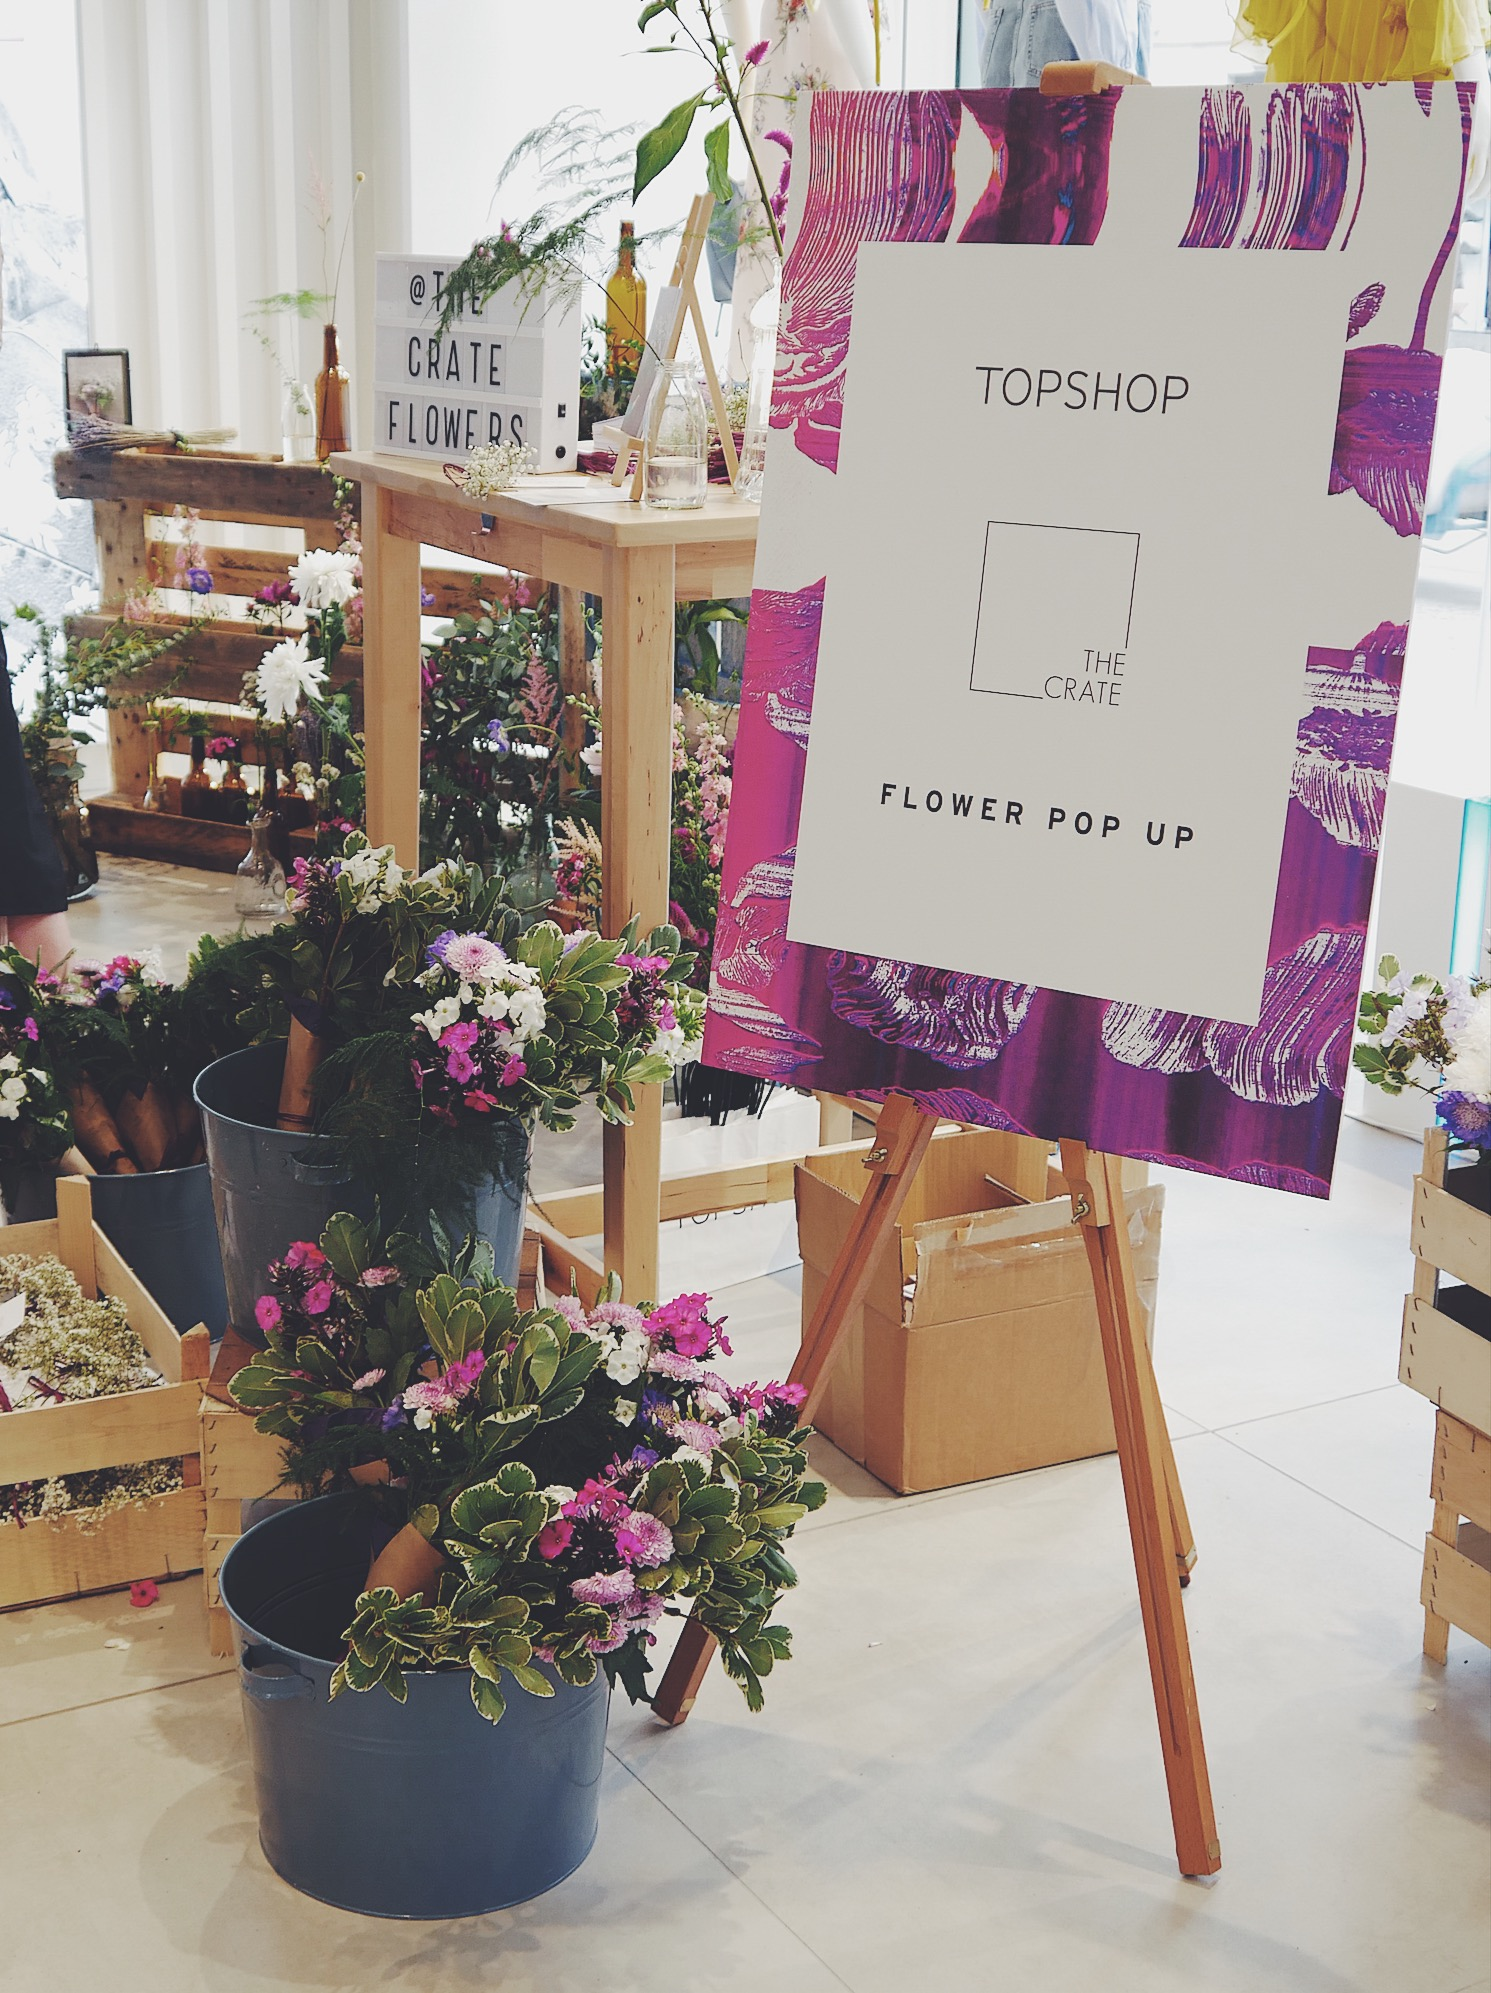 TOPSHOP X The Crate